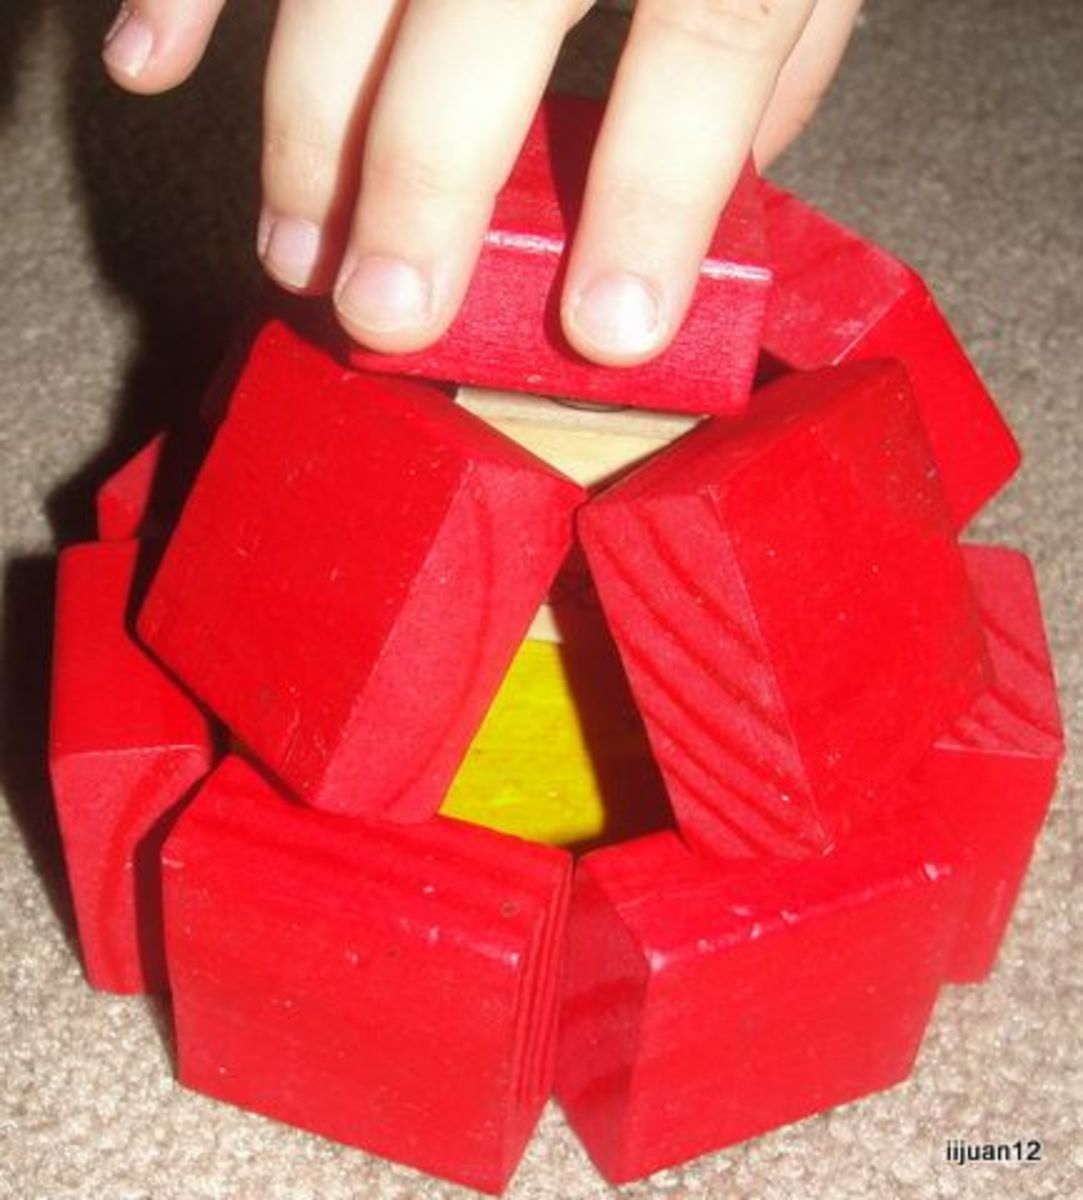 Using blocks to build a dome